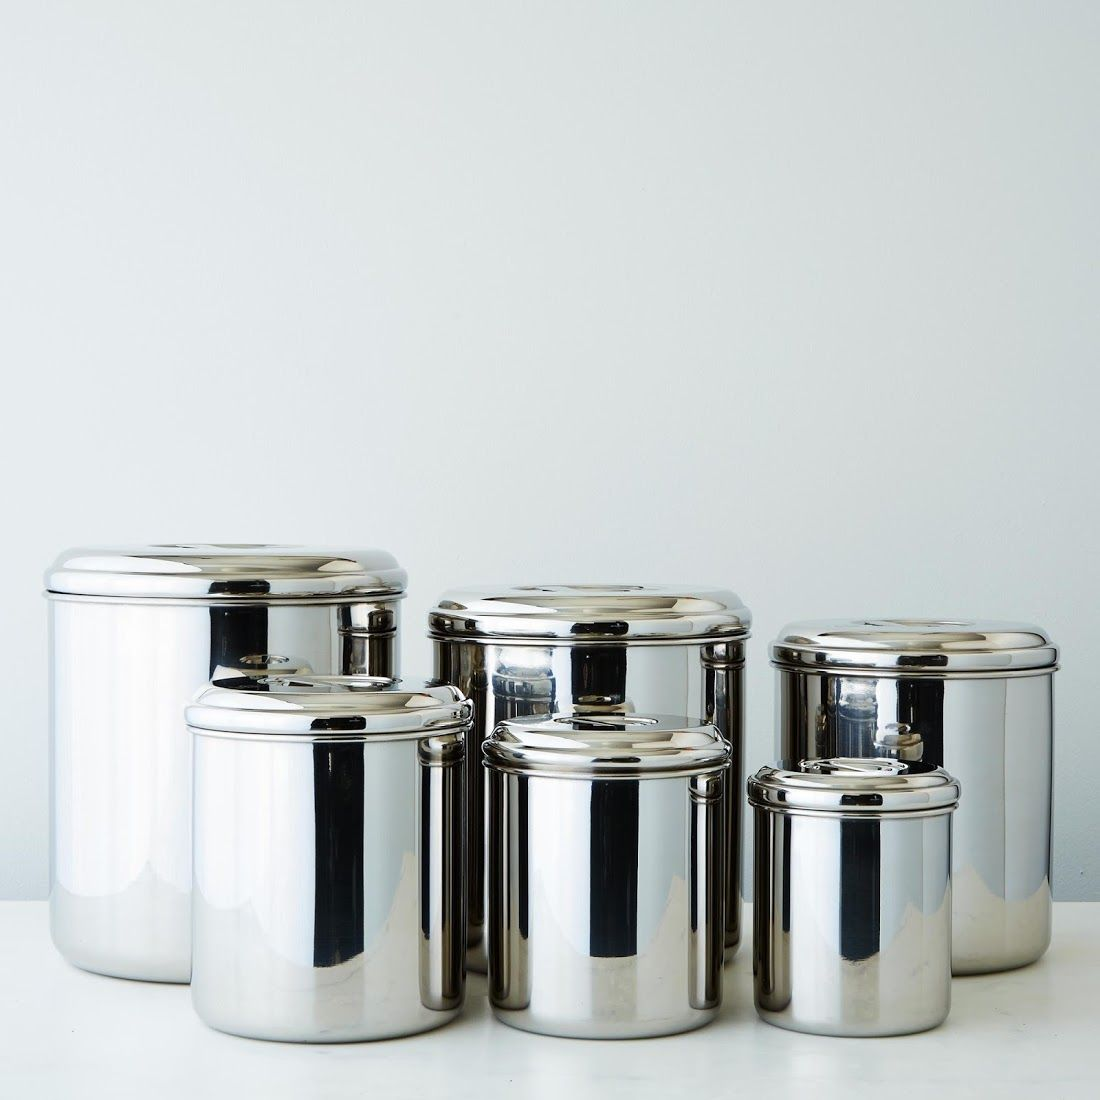 Stainless Steel Canisters Set Of 6 Stainless Steel Canister Set Decorative Kitchen Canisters Stainless Steel Canisters